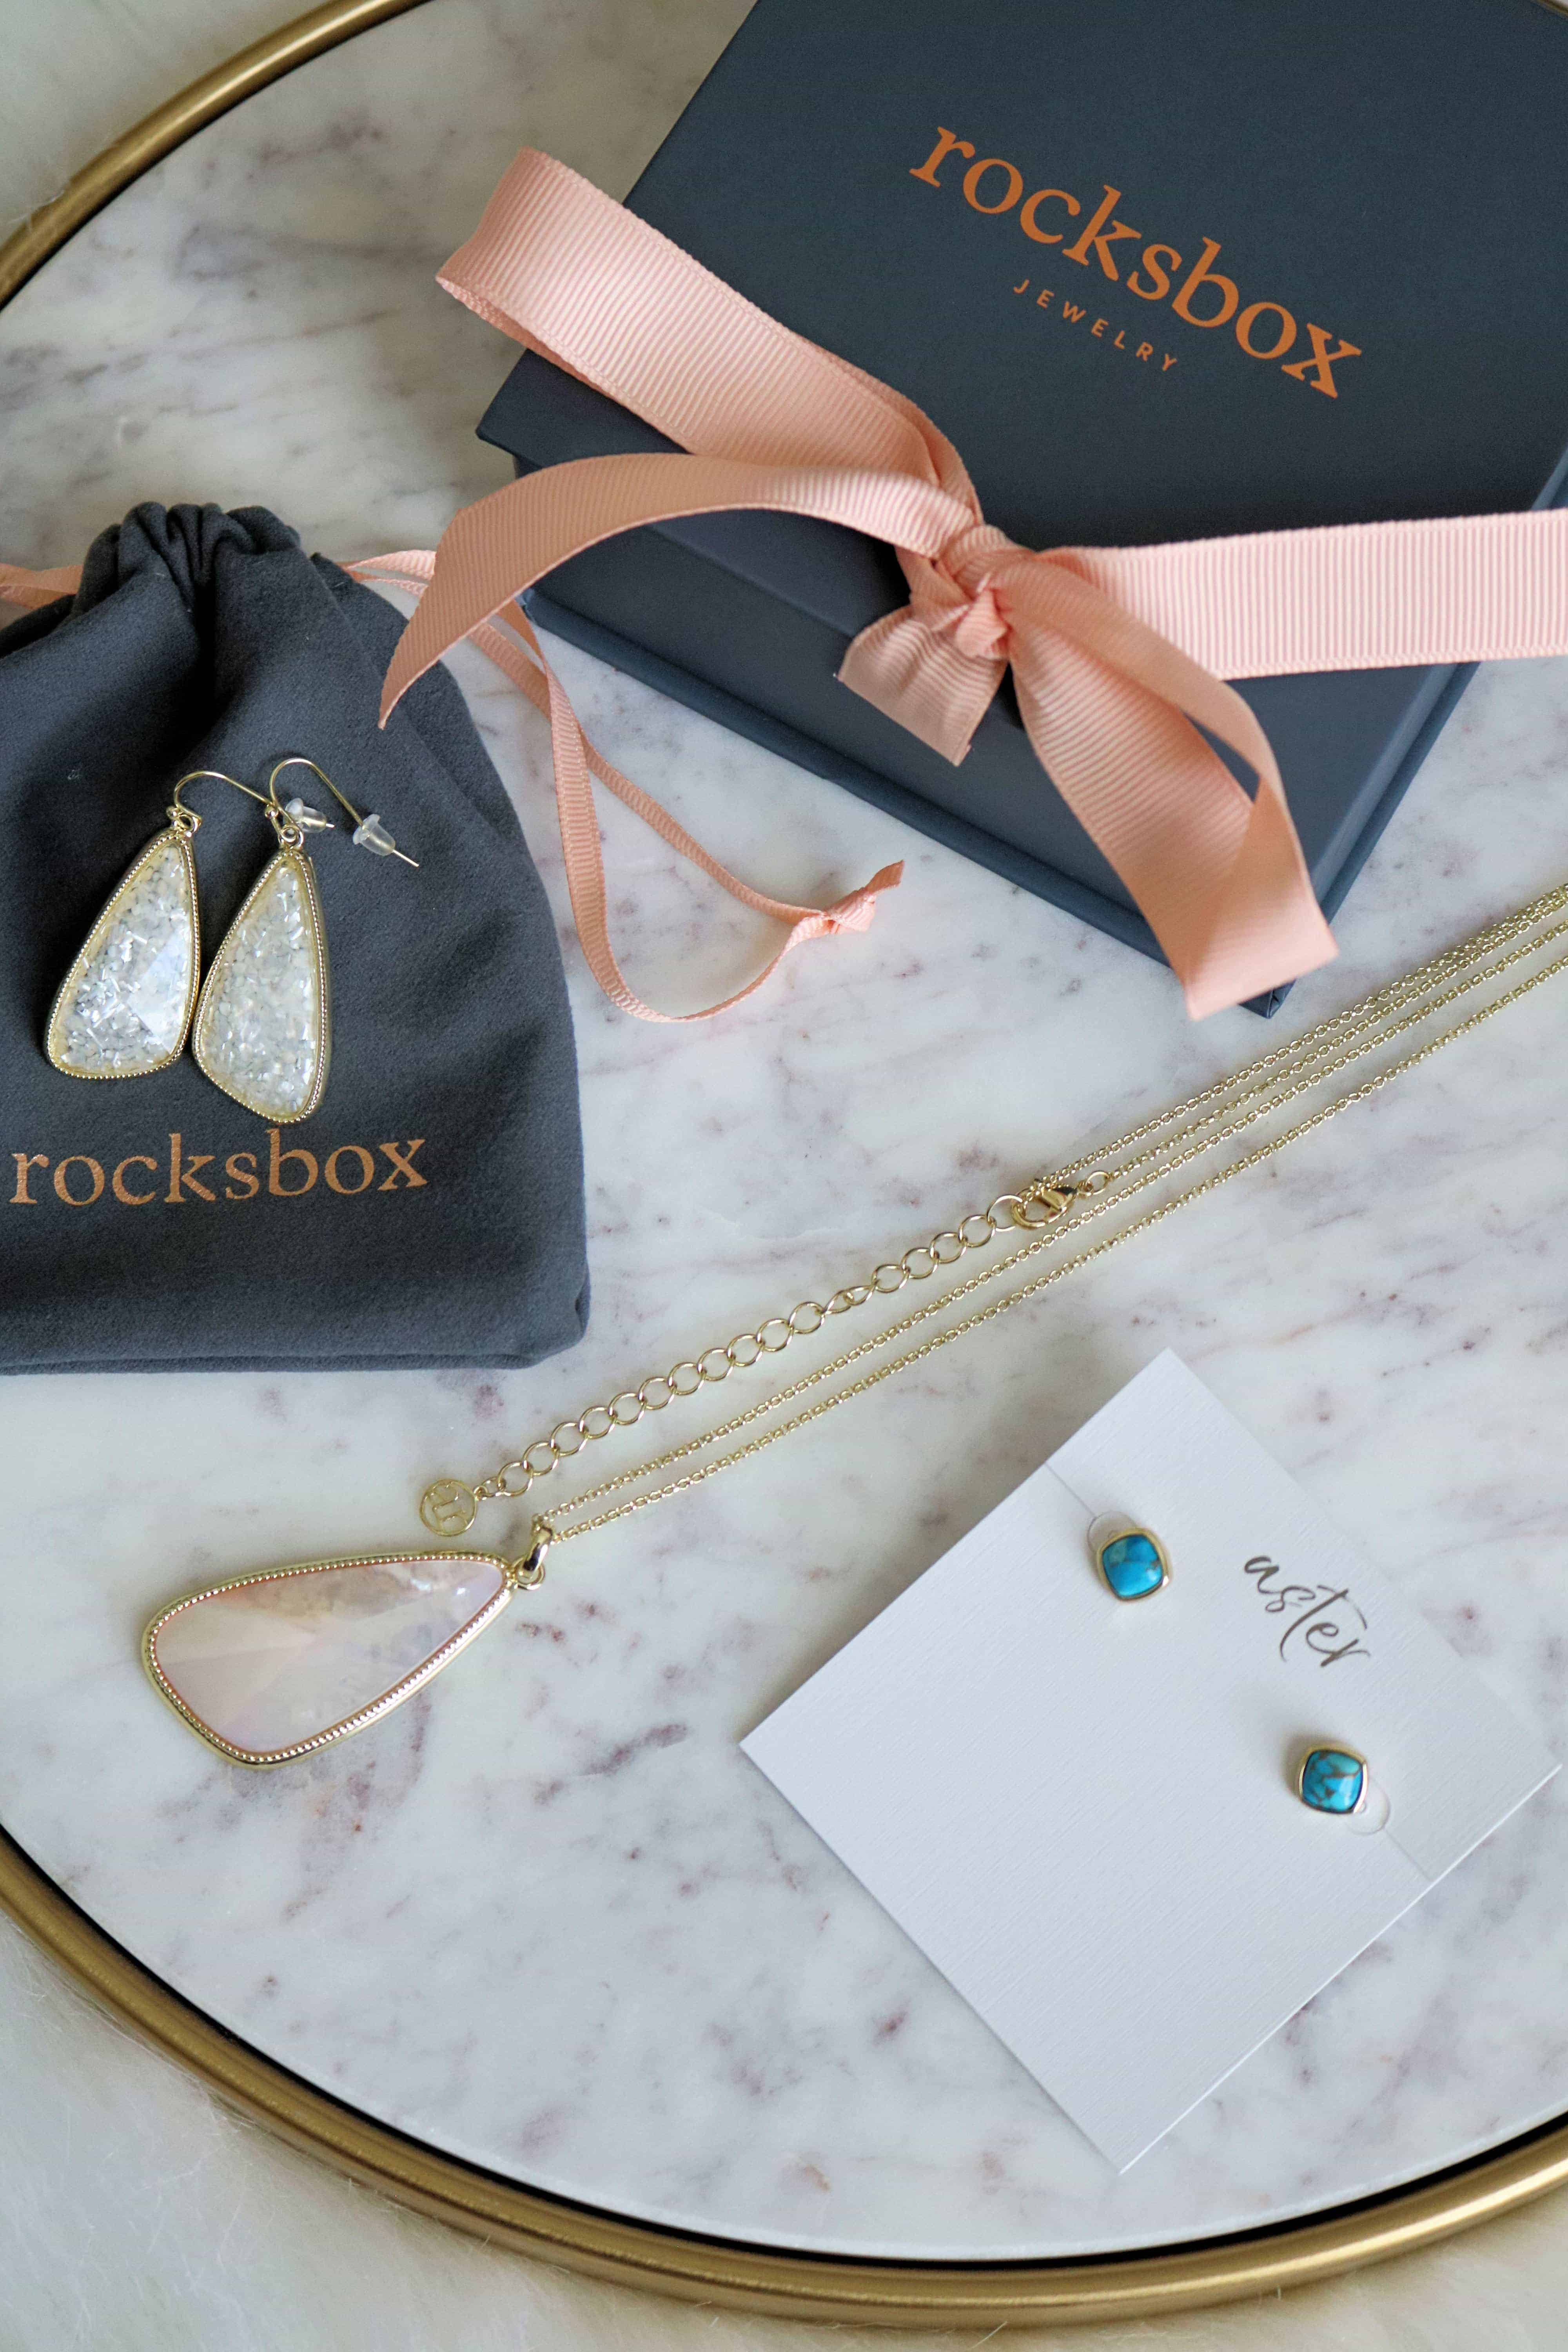 Love gorgeous, designer jewelry? Would you love to try out new trendy pieces every month? Then check out my honest Rocksbox review on how it works, how much it costs, and take advantage of my exclusive promo code to try out Rocksbox for 1 month FREE! #rocksbox #rocksboxreview #jewelry